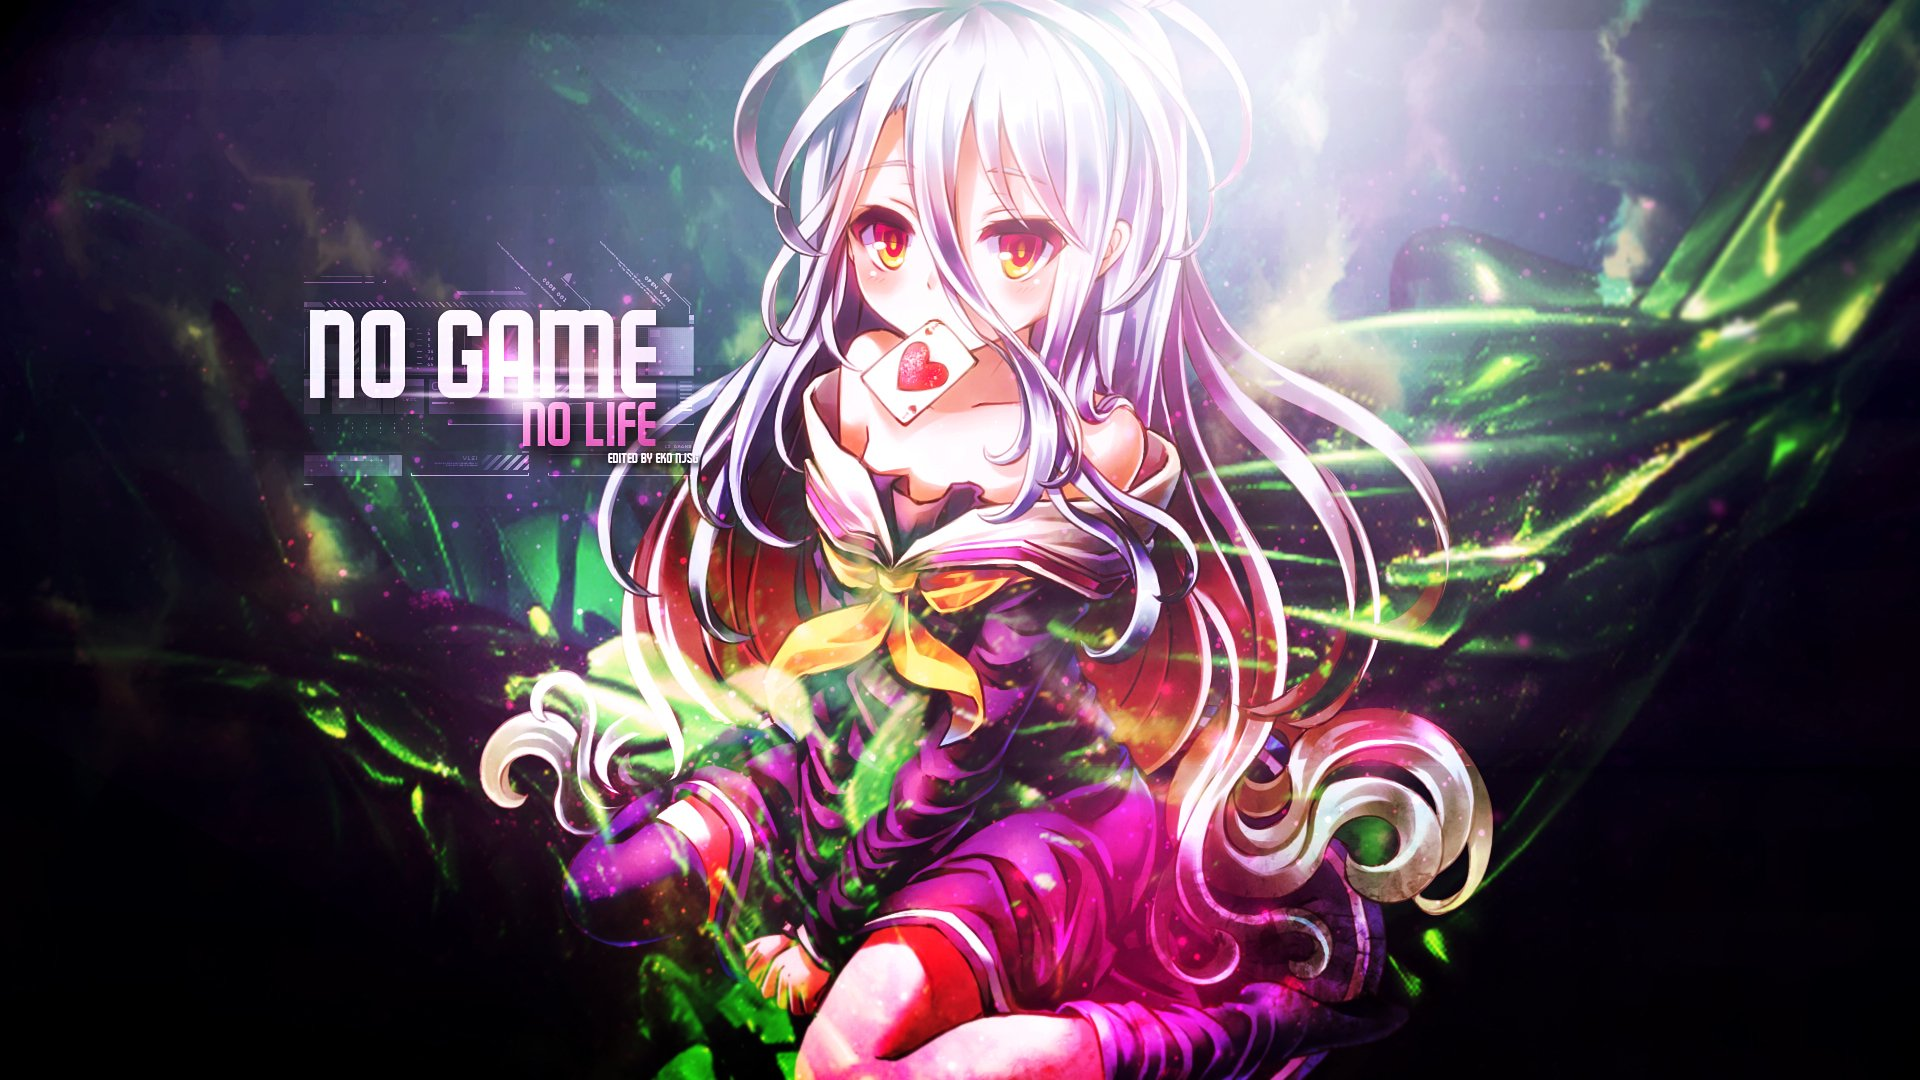 Anime - No Game No Life  Shiro (No Game No Life) Wallpaper